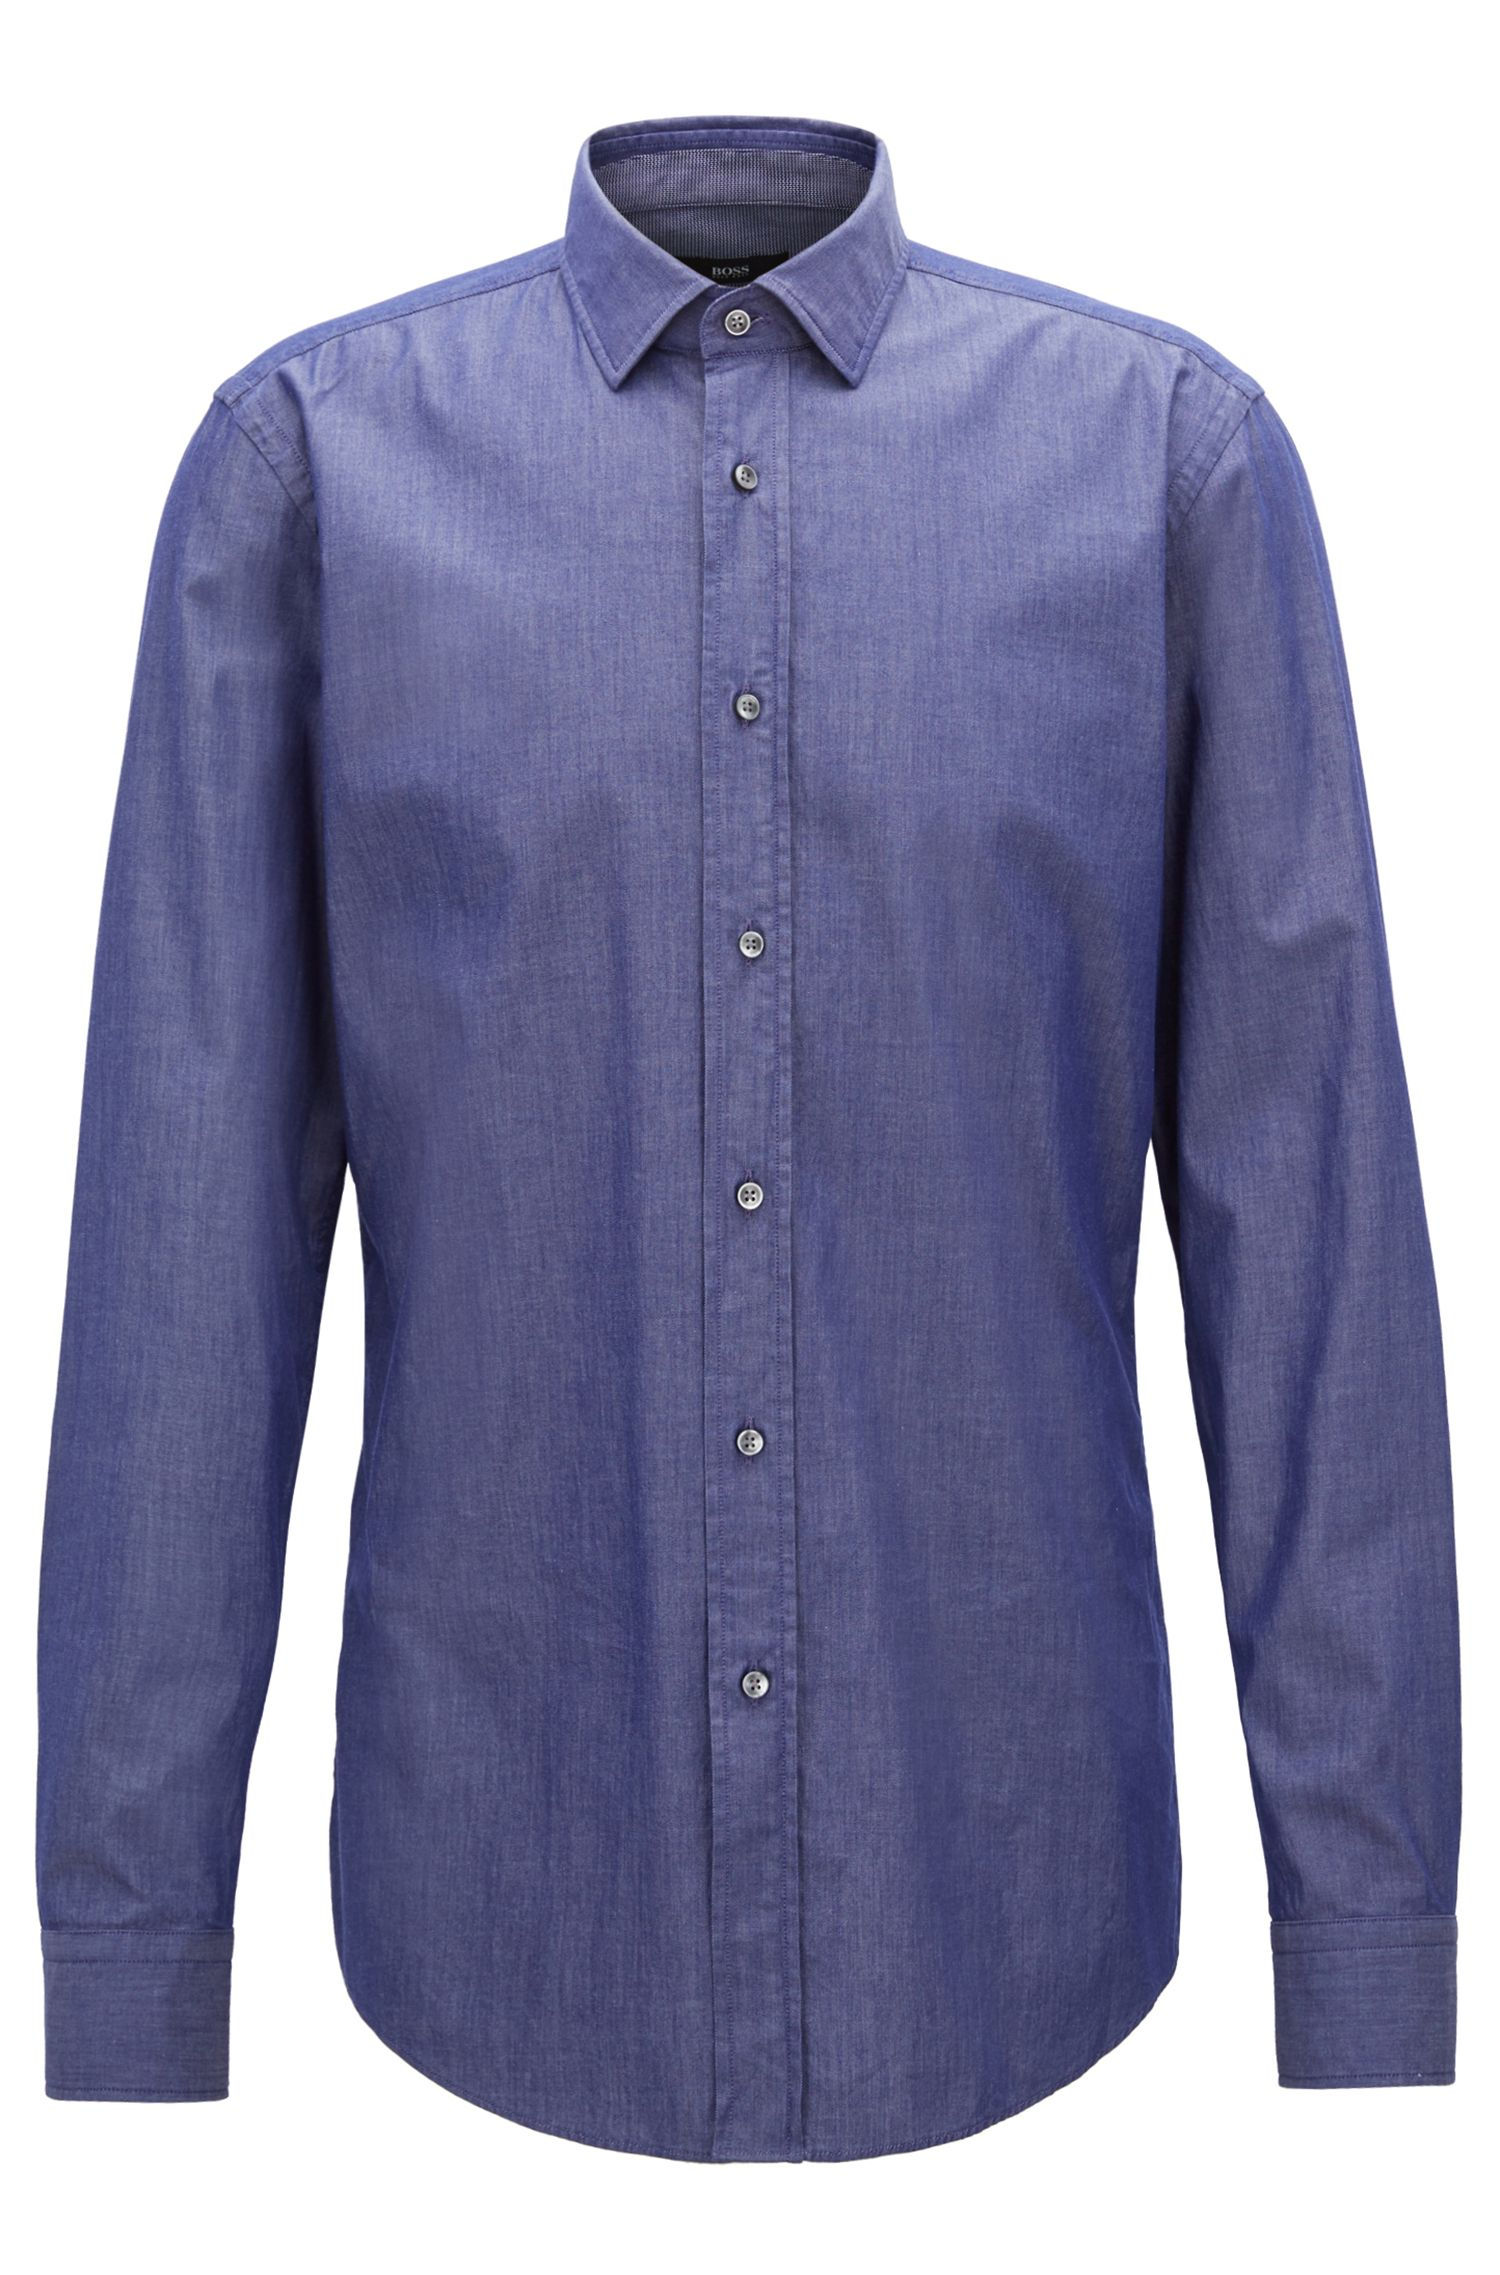 Slim-fit shirt in denim-inspired stretch twill